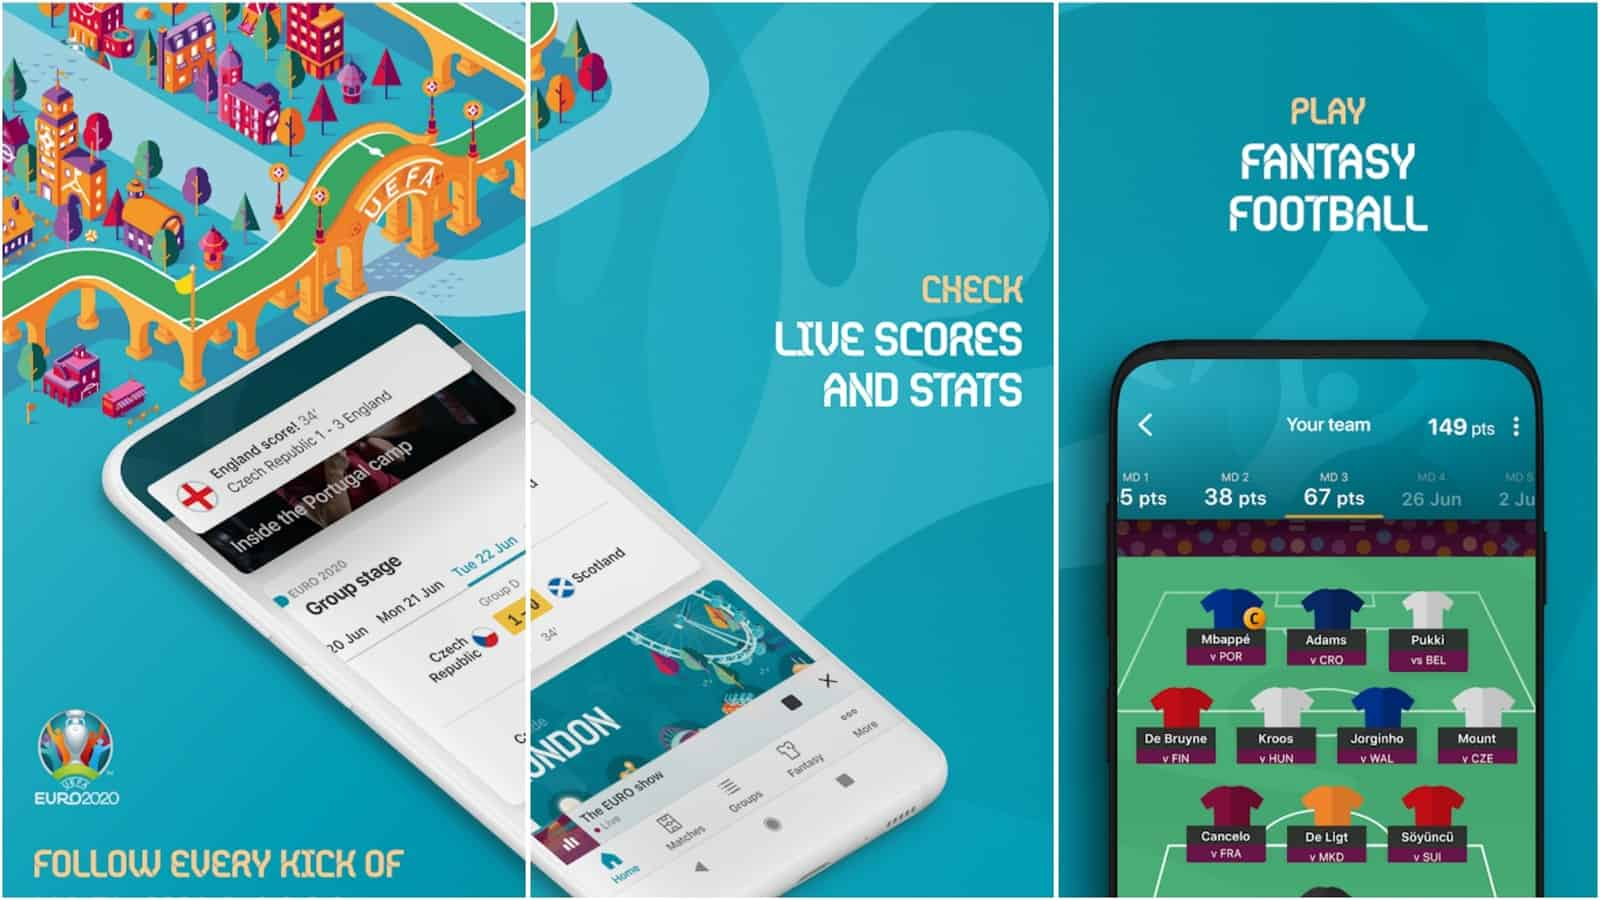 EURO 2020 Official app grid image